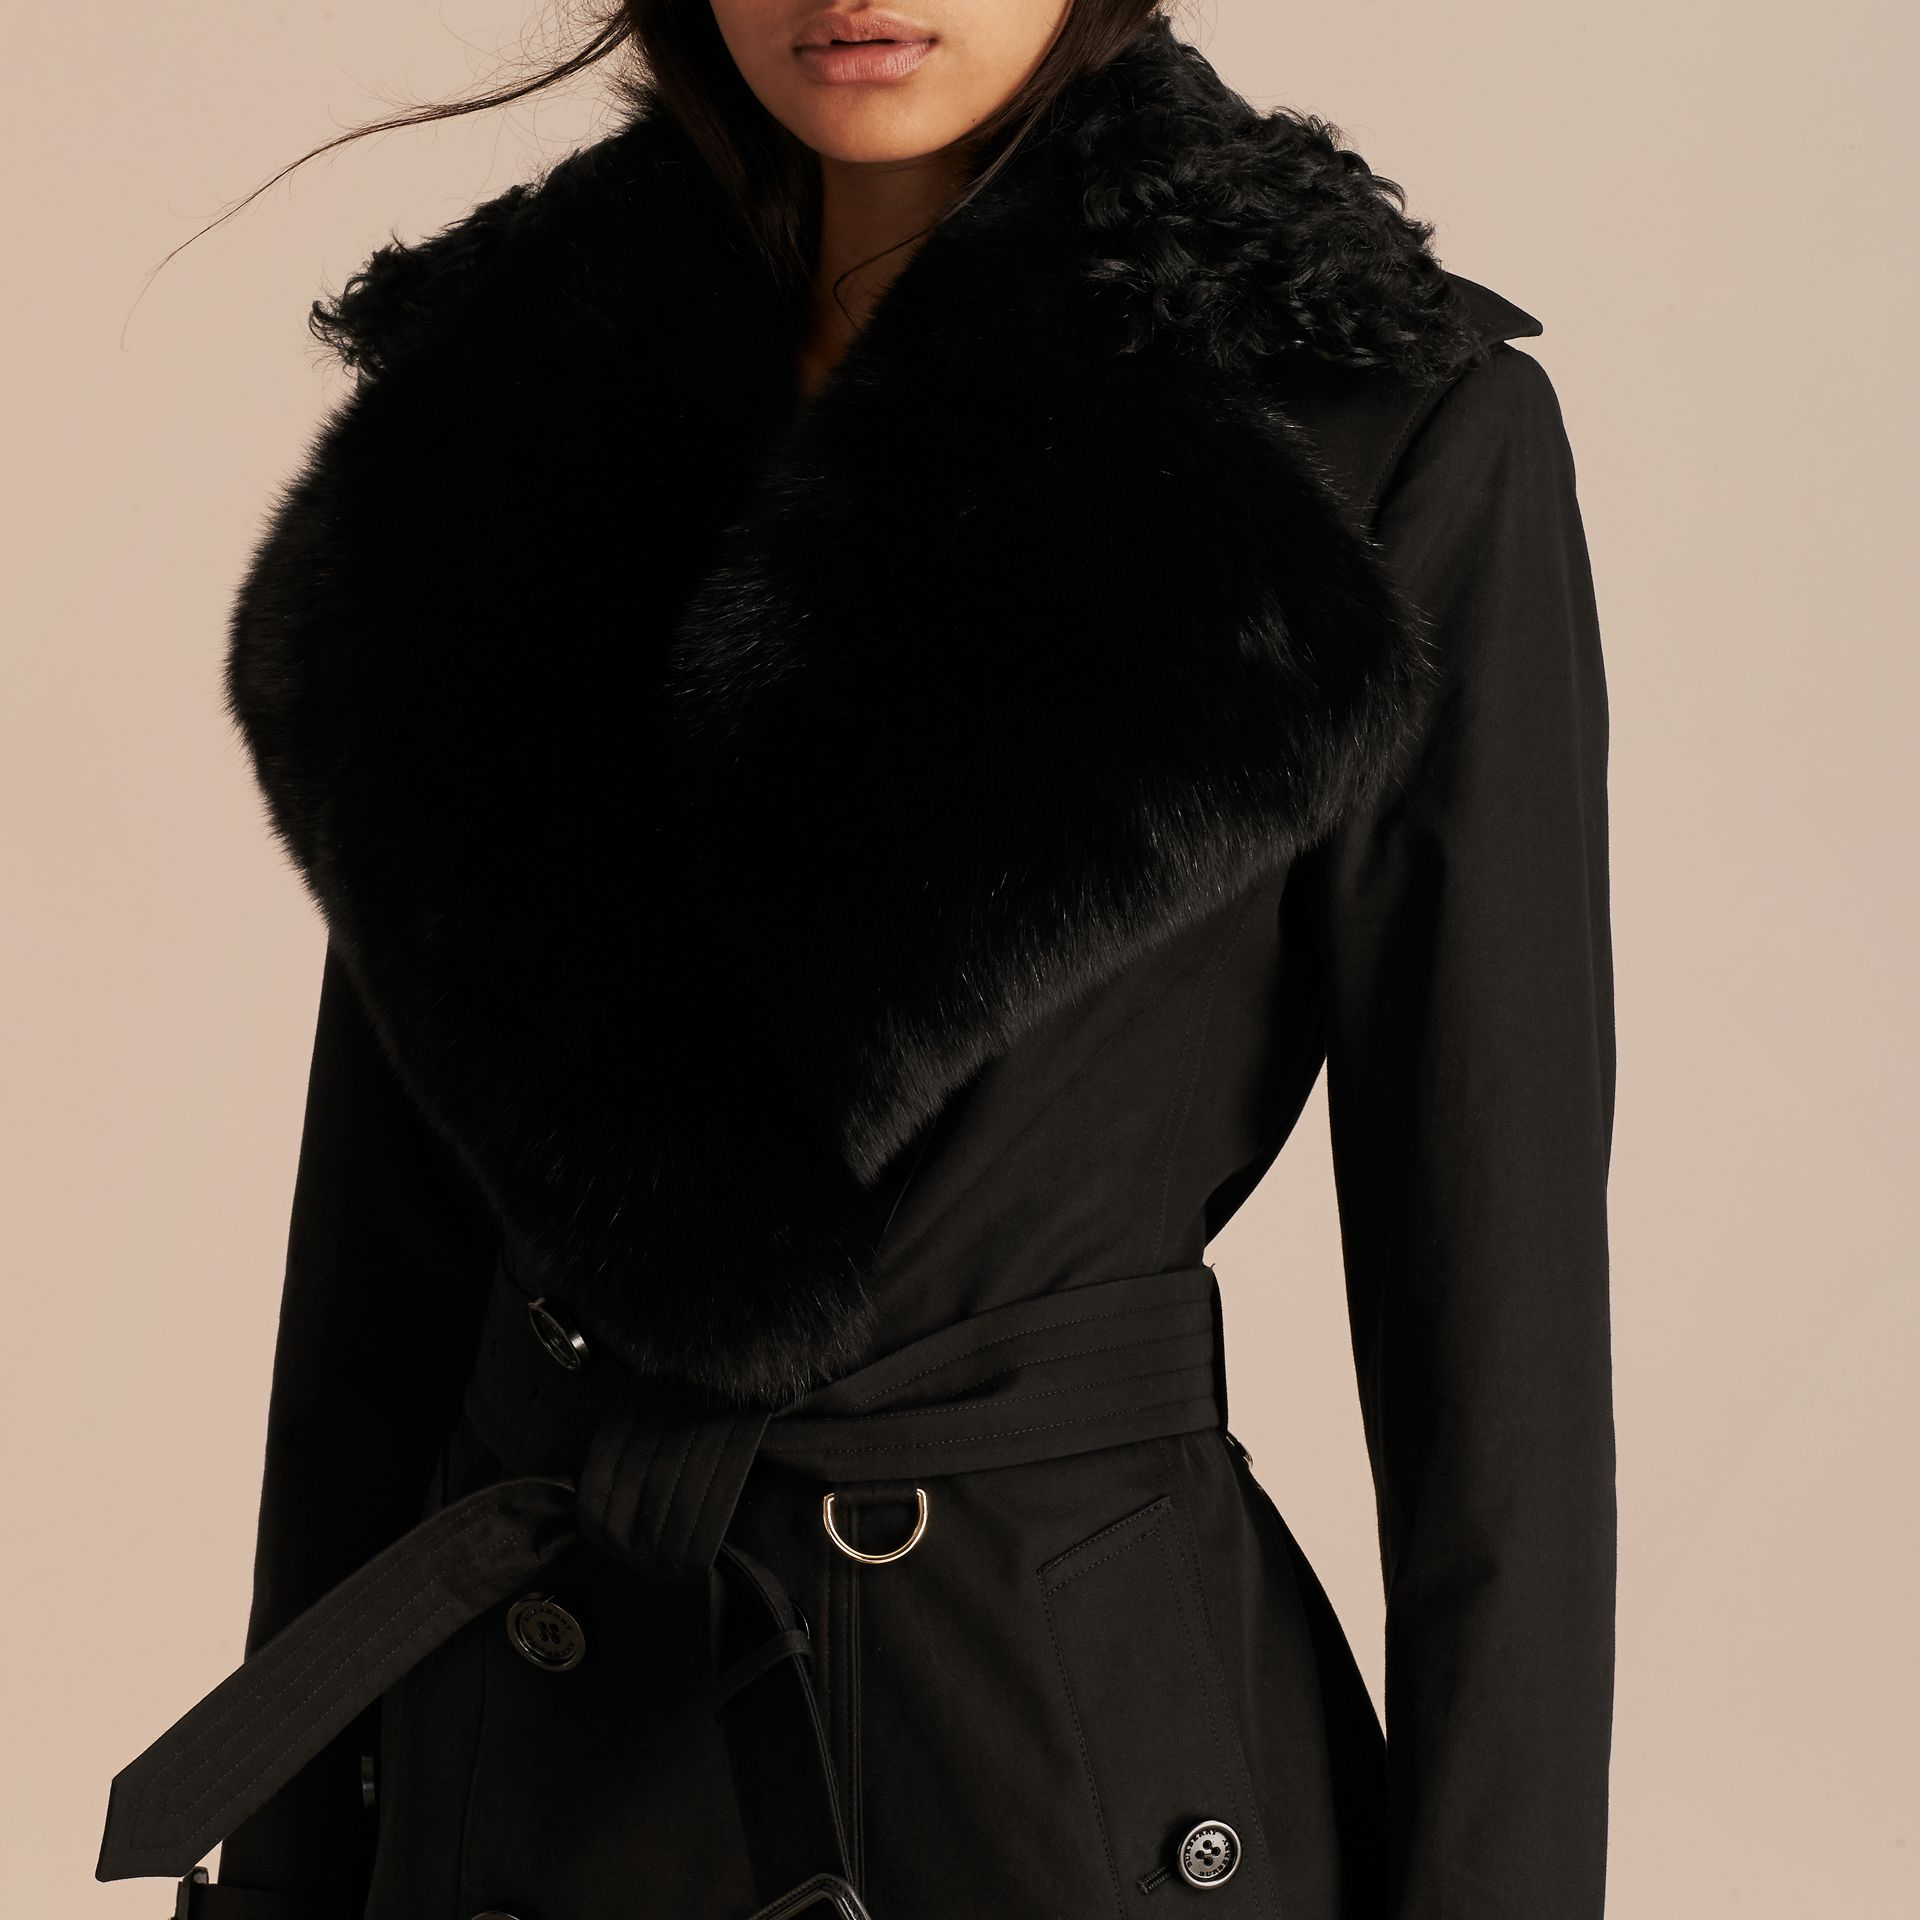 Black Cotton Gabardine Trench Coat with Detachable Fur Trim - gallery image 5